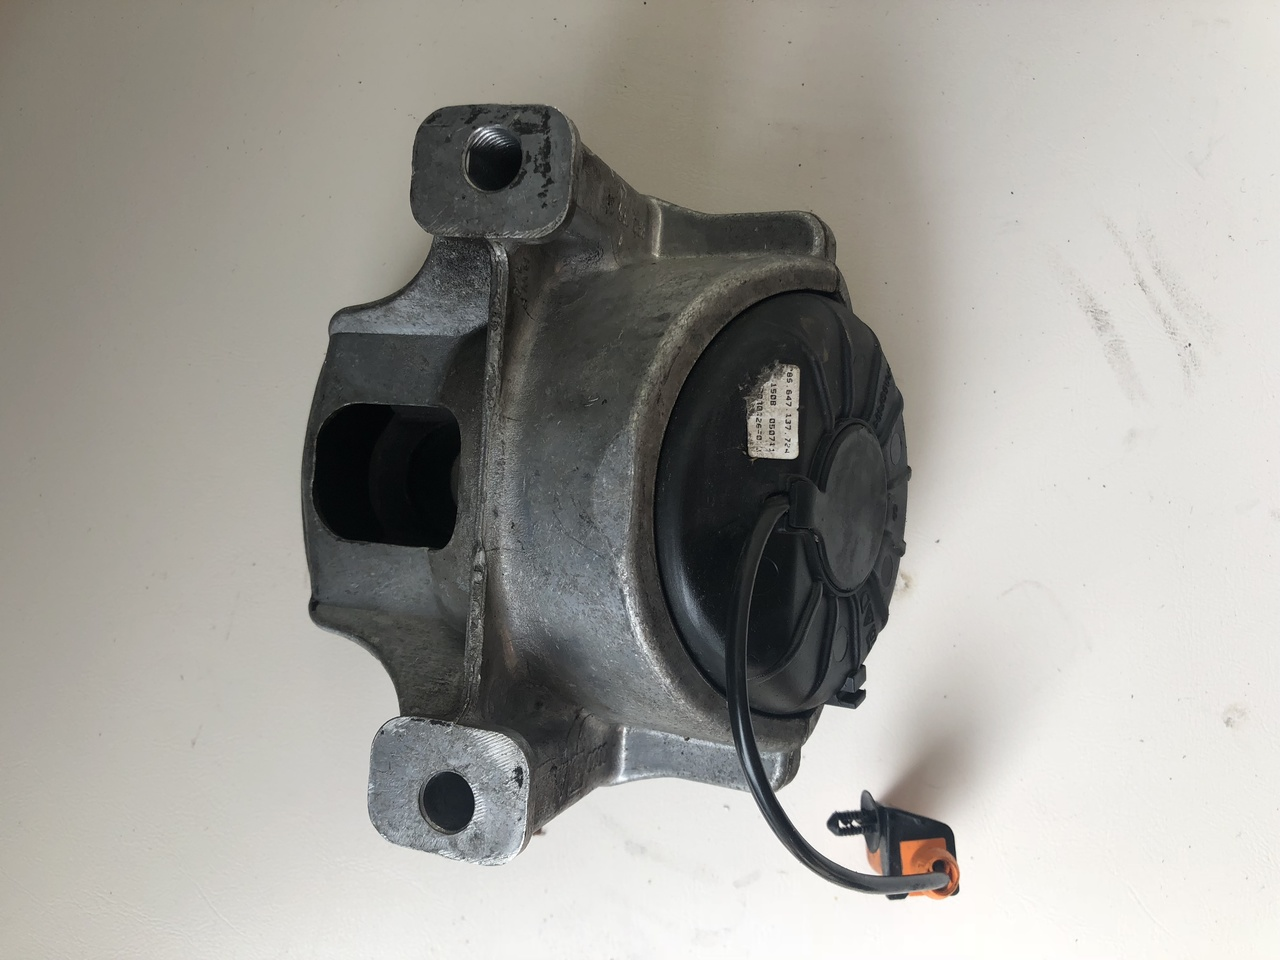 Audi A4 B8 Audi A5 2l Turbo Cdn Engine Used Lh Engine Mount Parts